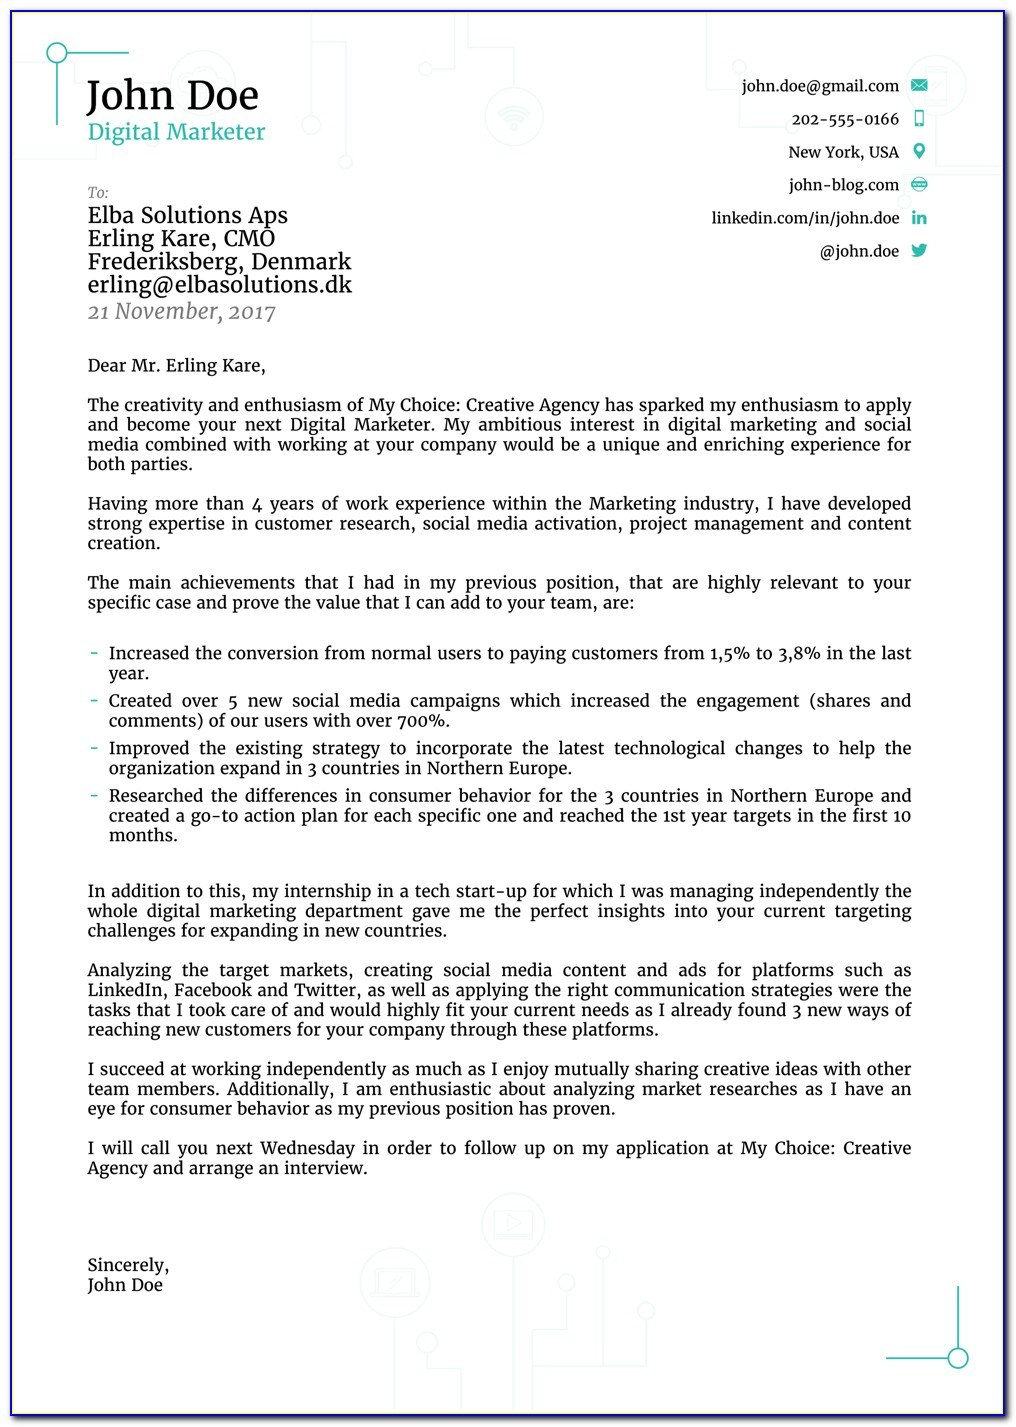 cover letter sample for resume fresh graduate vincegray2014 samples electronics and Resume Cover Letter For Resume For Fresh Graduate